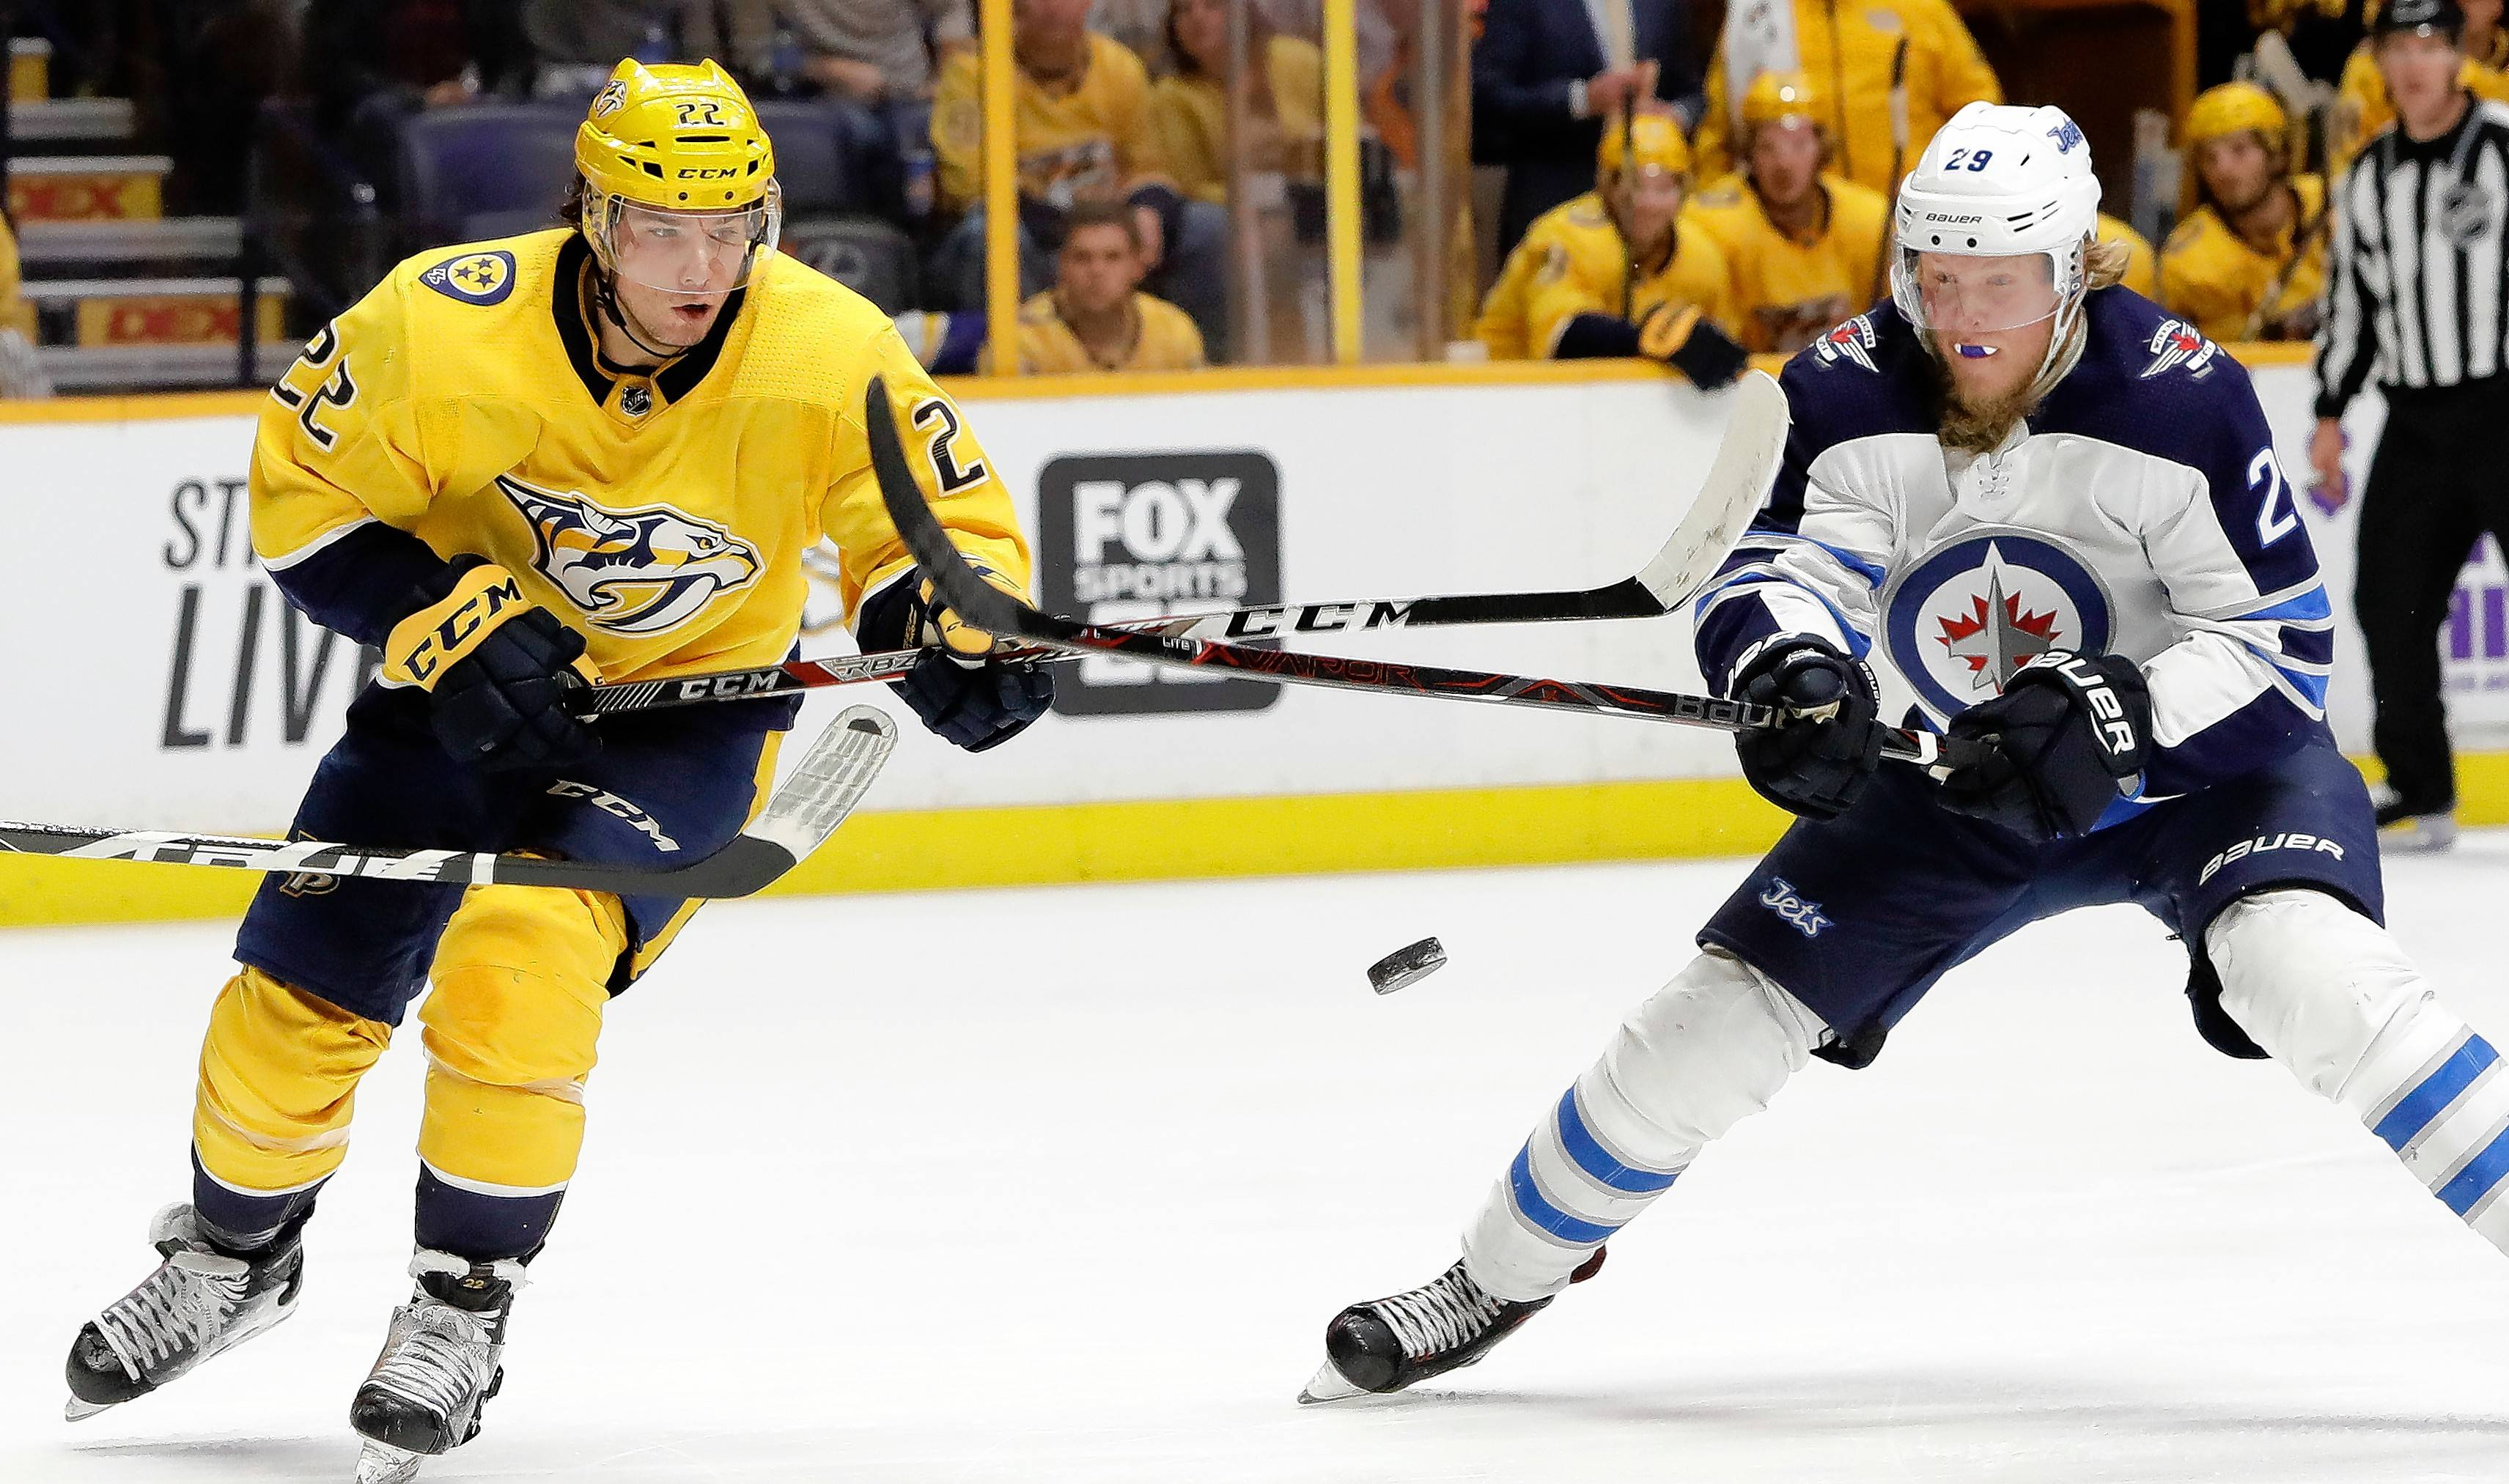 Nashville Predators left wing Kevin Fiala (22) and Winnipeg Jets right wing Patrik Laine (29) battle for the puck in a game last month in Nashville, Tenn.